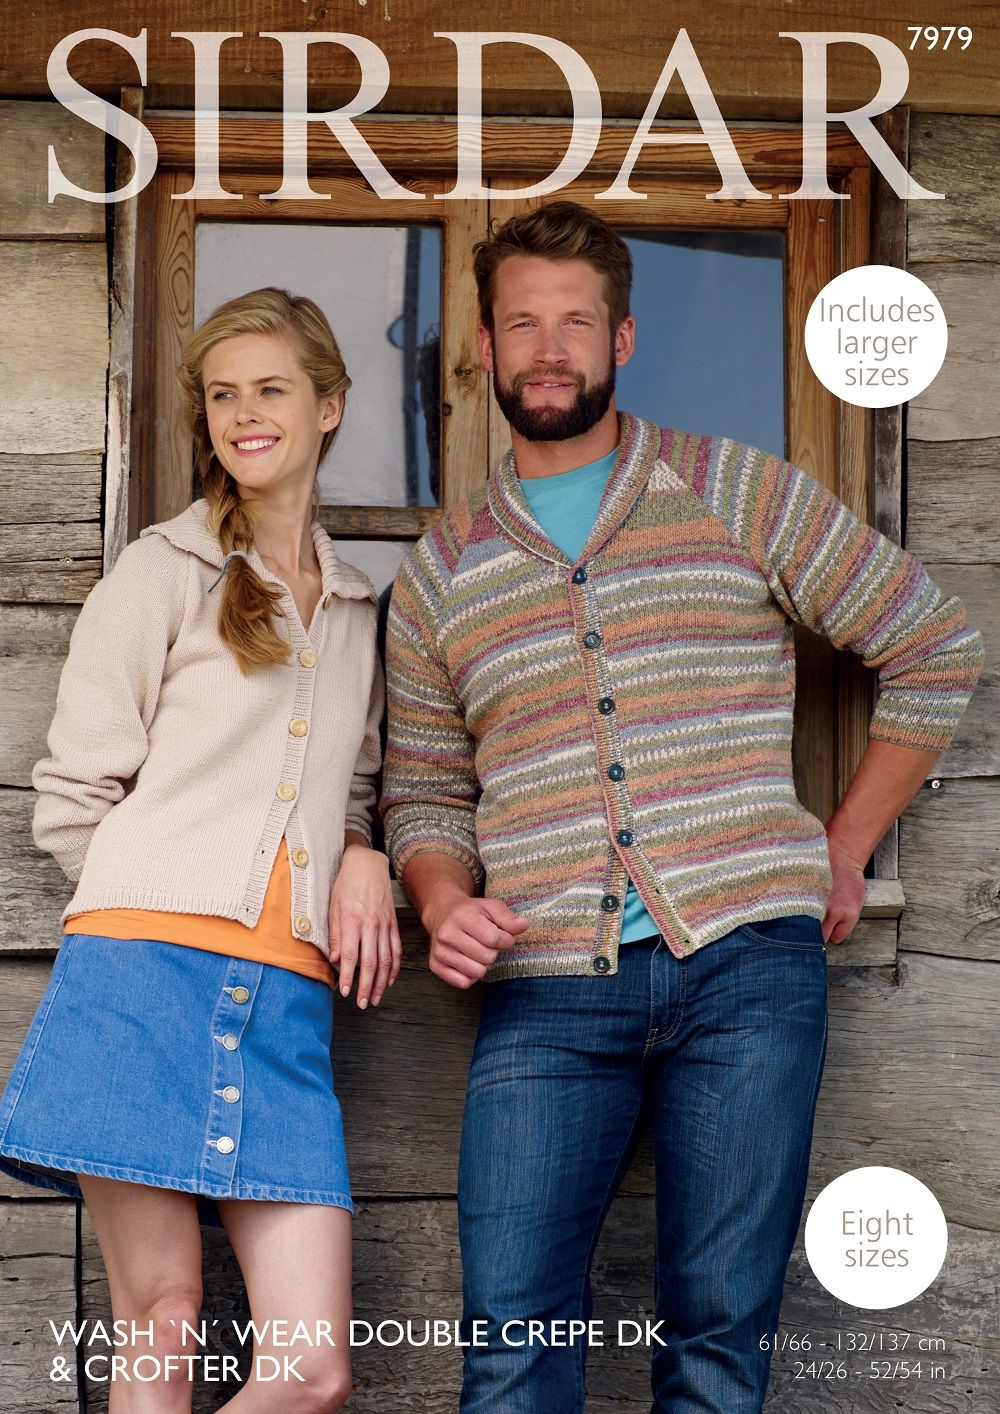 Sirdar Mens & Ladies Cardigans Knitting Pattern in DK 7979P PDF